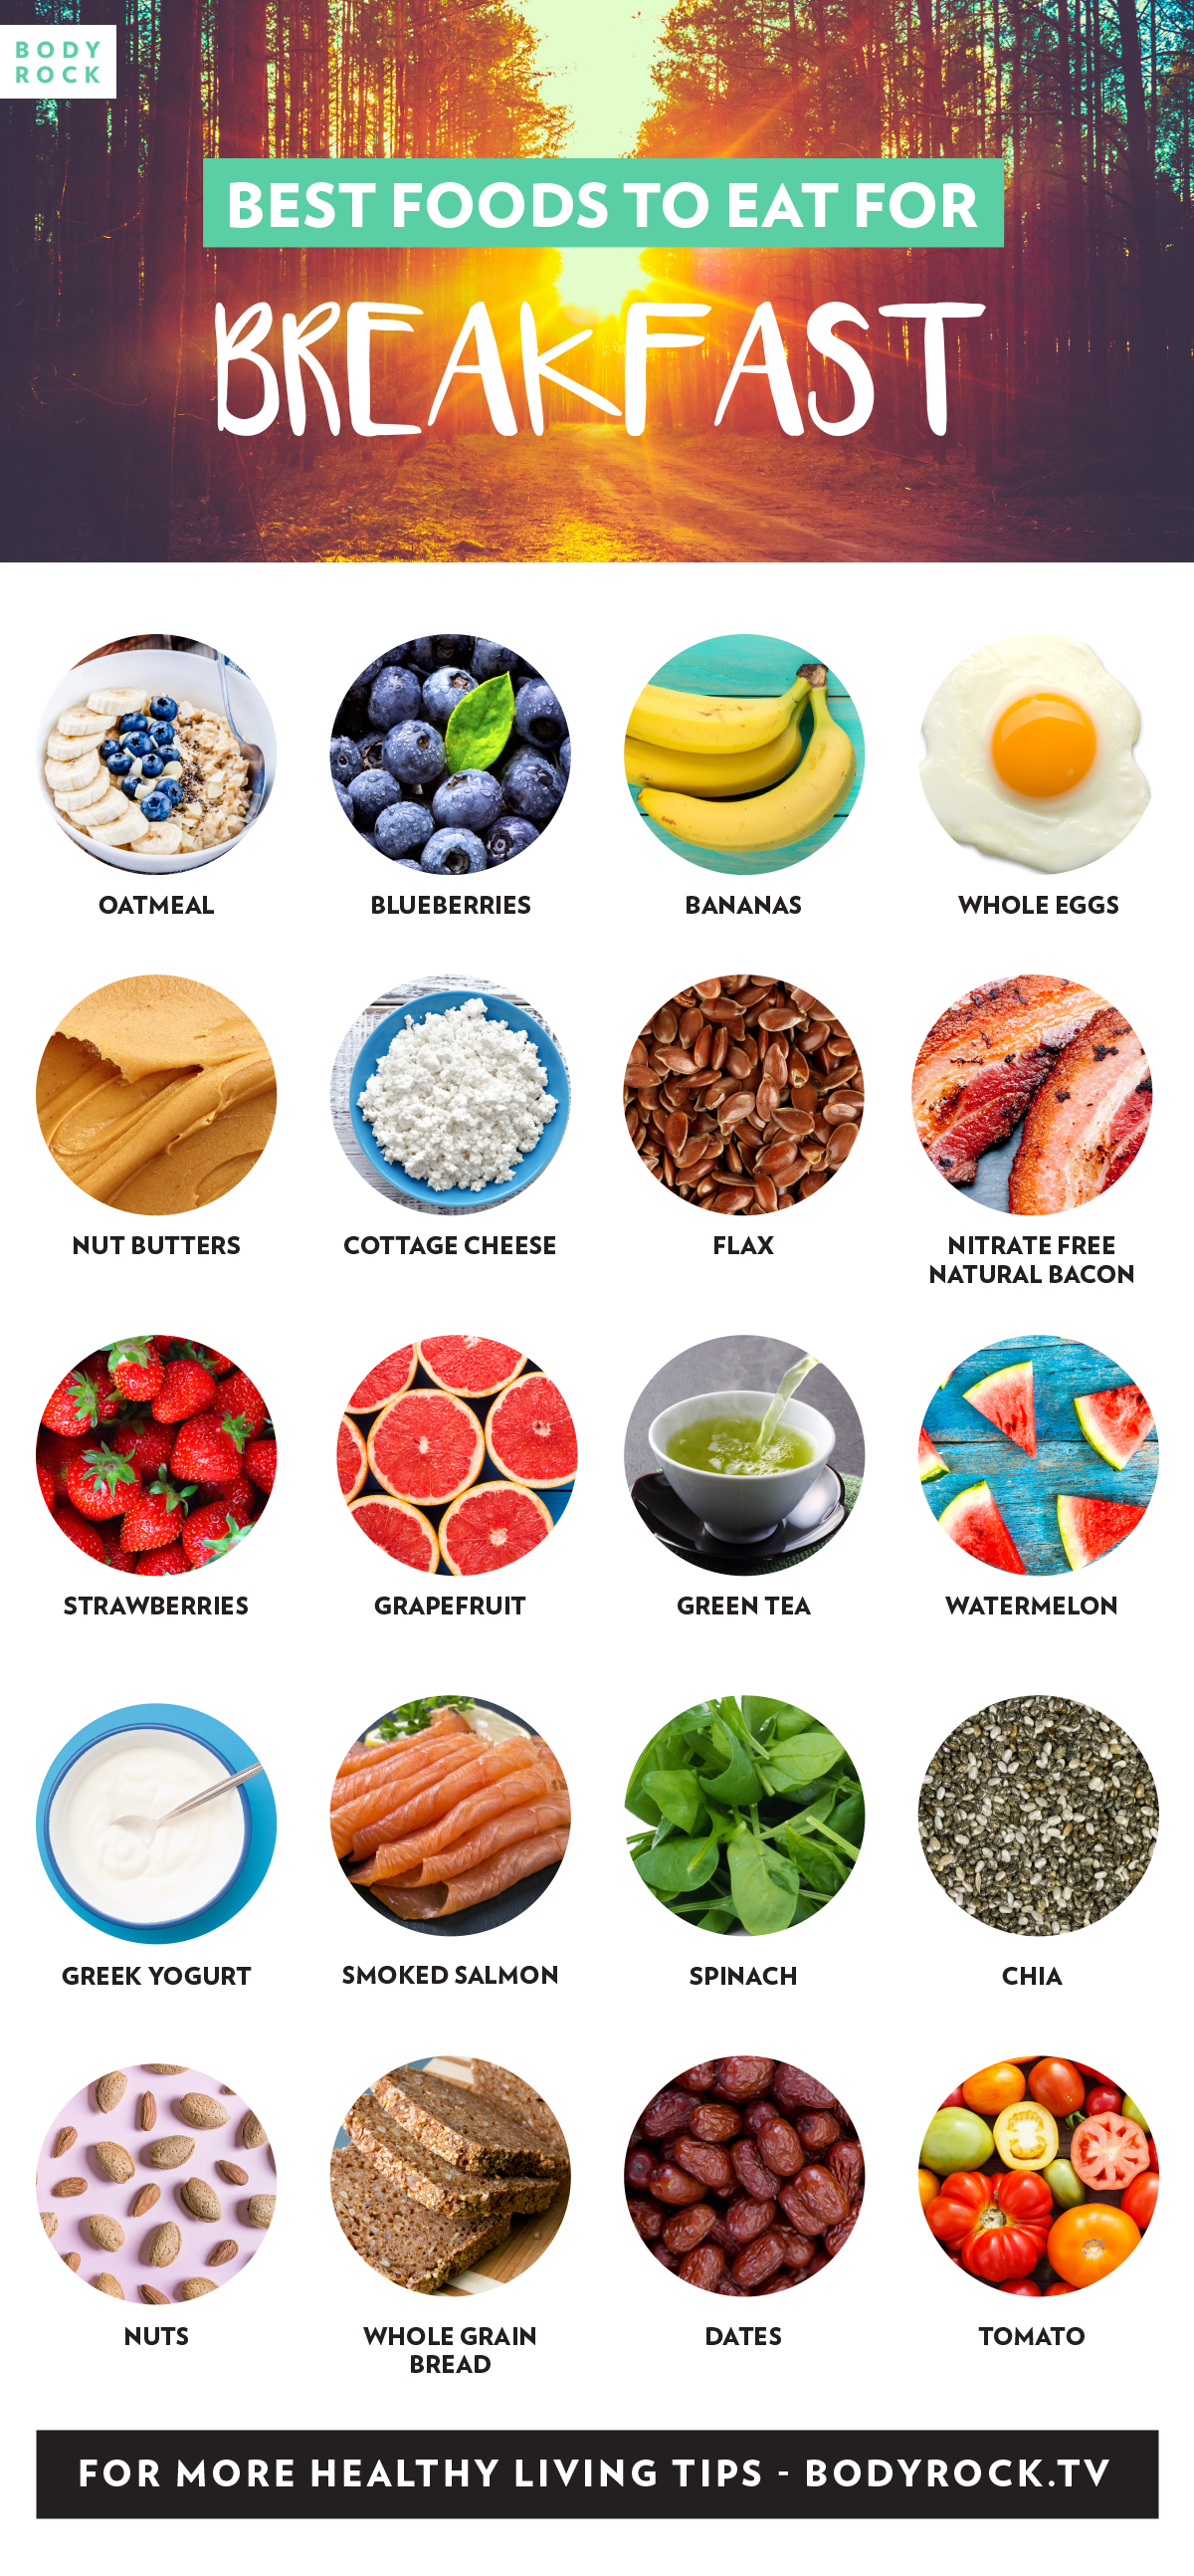 Fill Your Mornings With These Foods The BodyRock List Of Best Breakfast Start Morning Off Right Recipes Containing